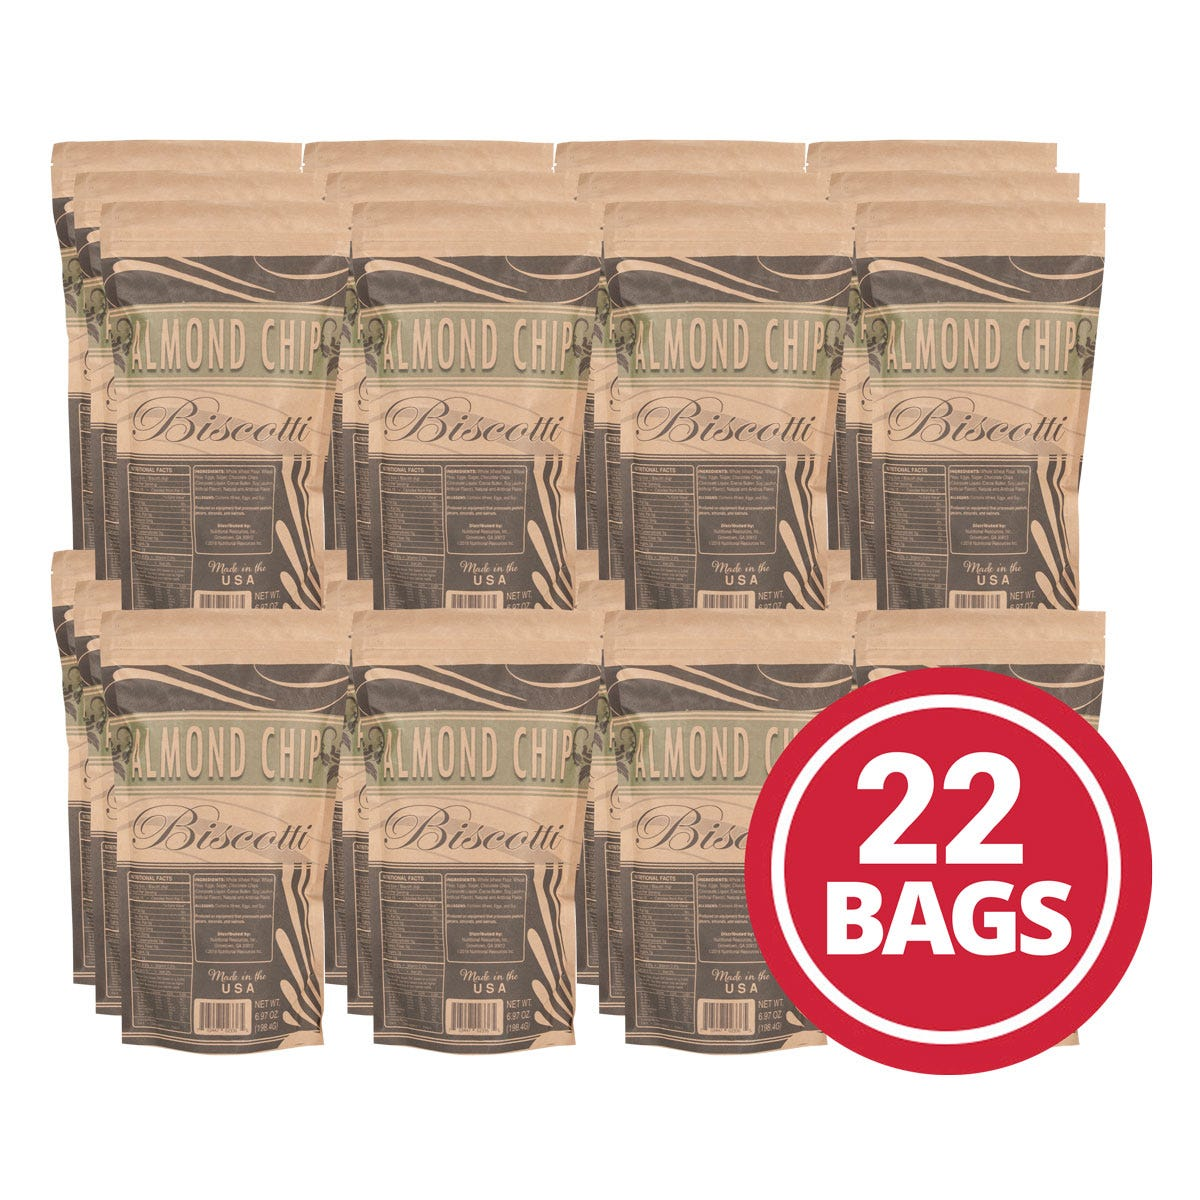 Fat-Free Biscotti Case Almond Chip (22 Ct) - BariWise